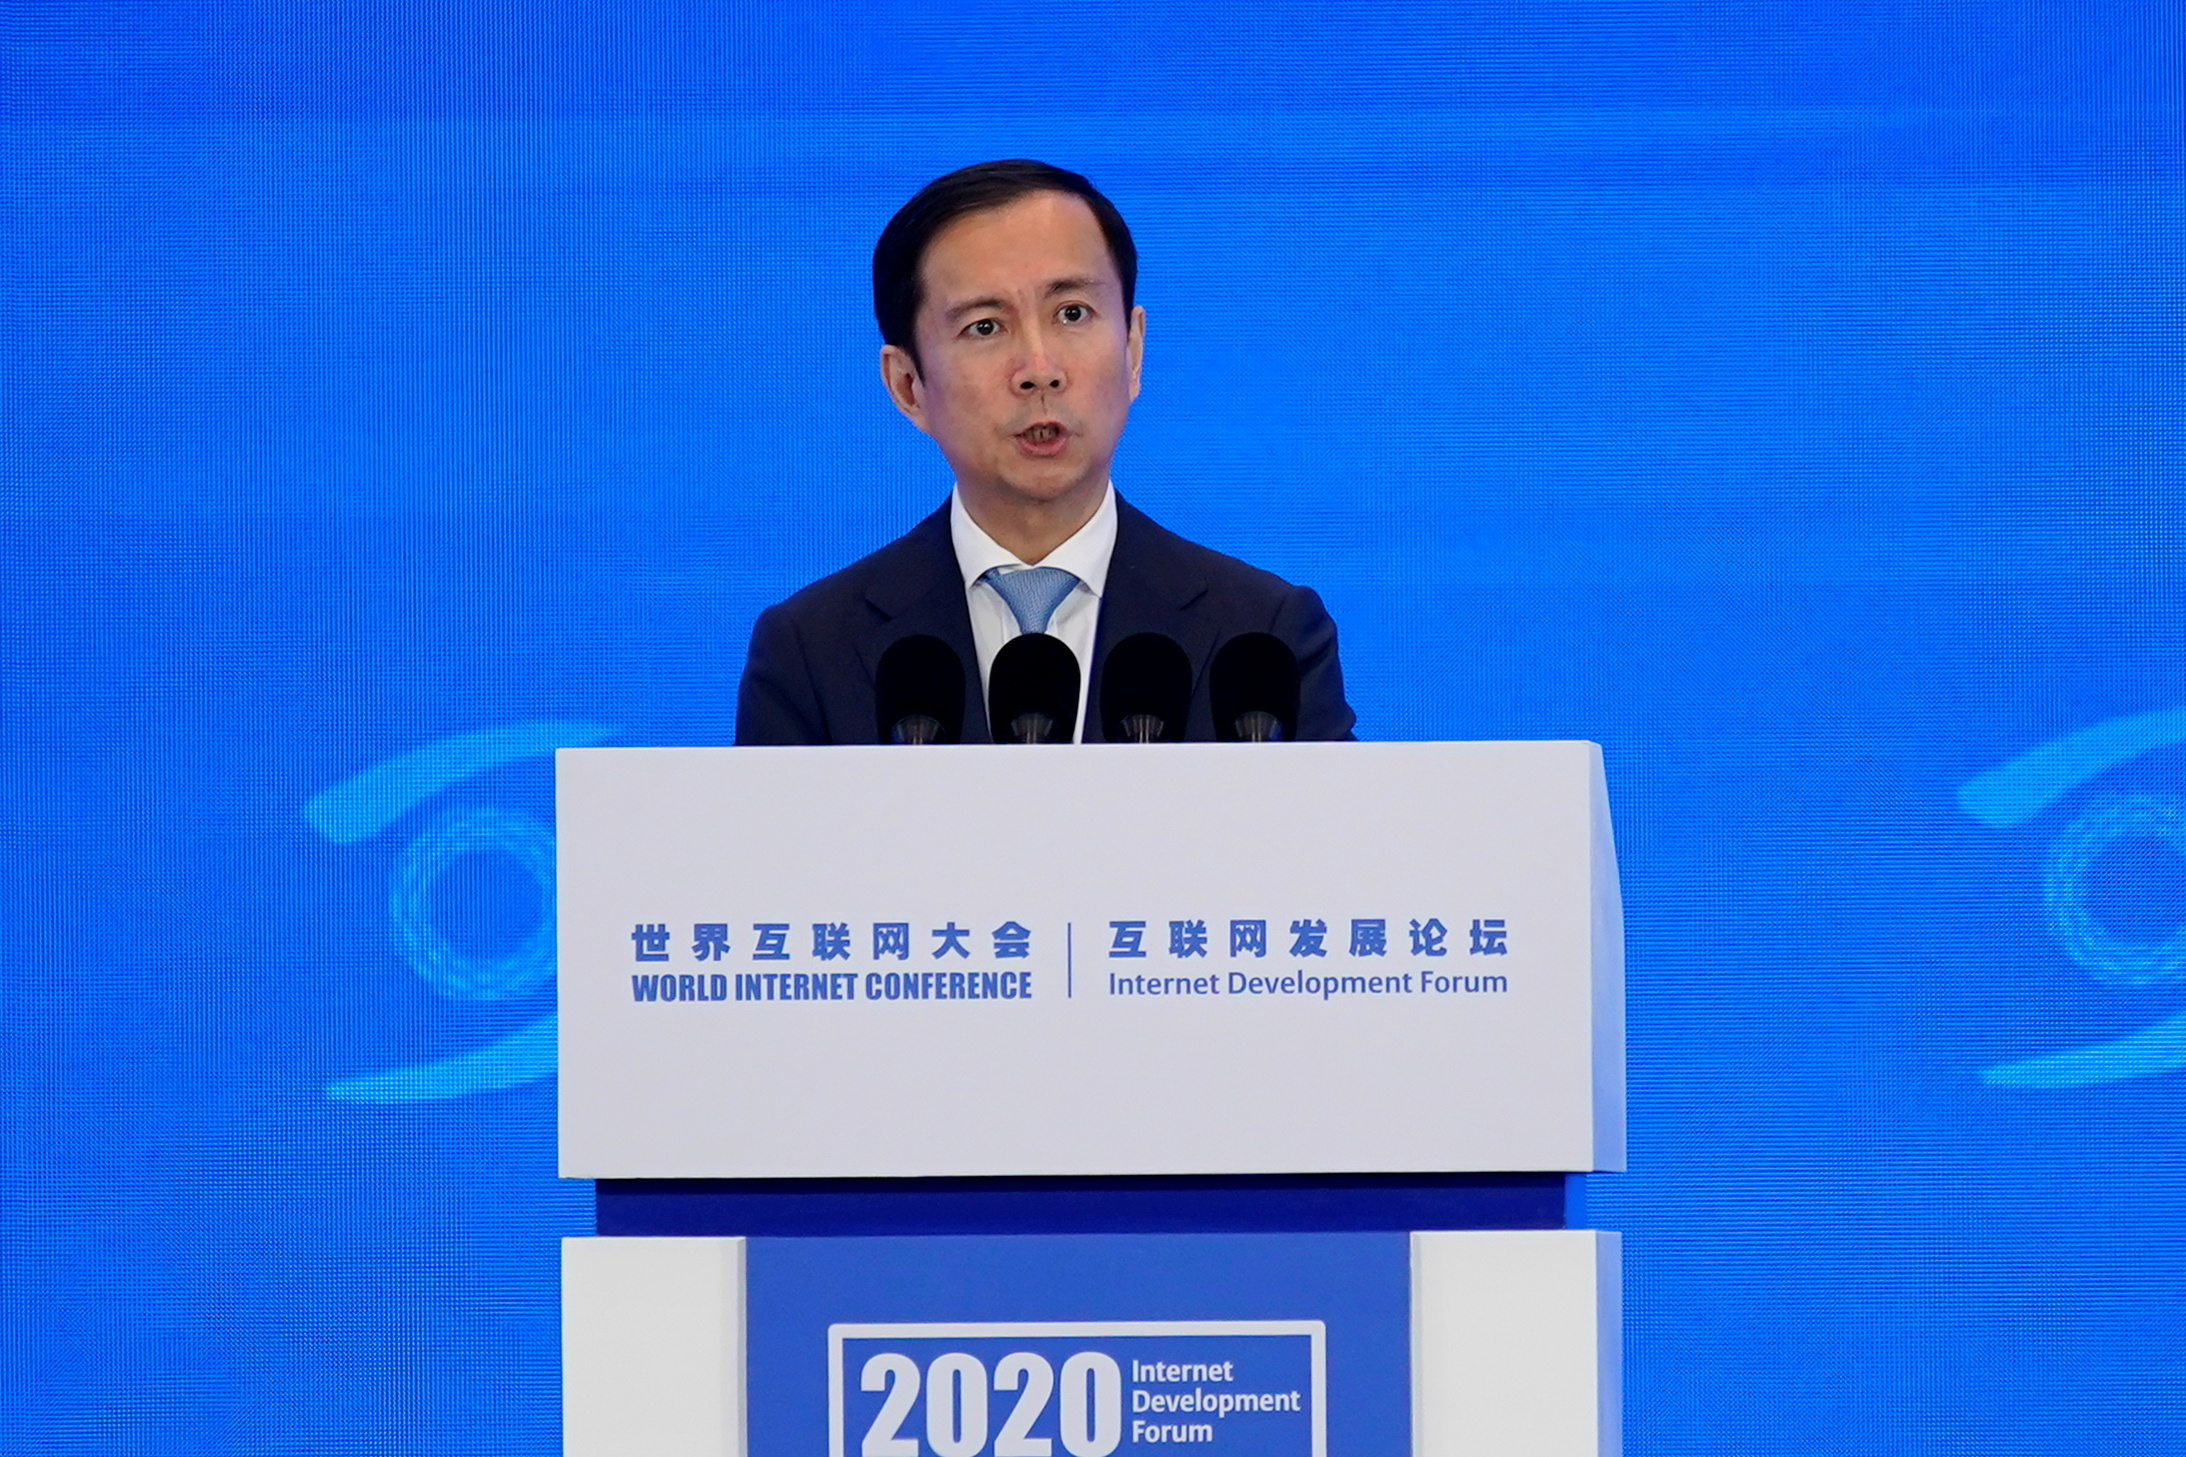 Alibaba Group CEO Daniel Zhang (Zhang Yong) speaks at the World Internet Conference (WIC) in Wuzhen, Zhejiang province, China, November 23, 2020. REUTERS/Aly Song/File Photo